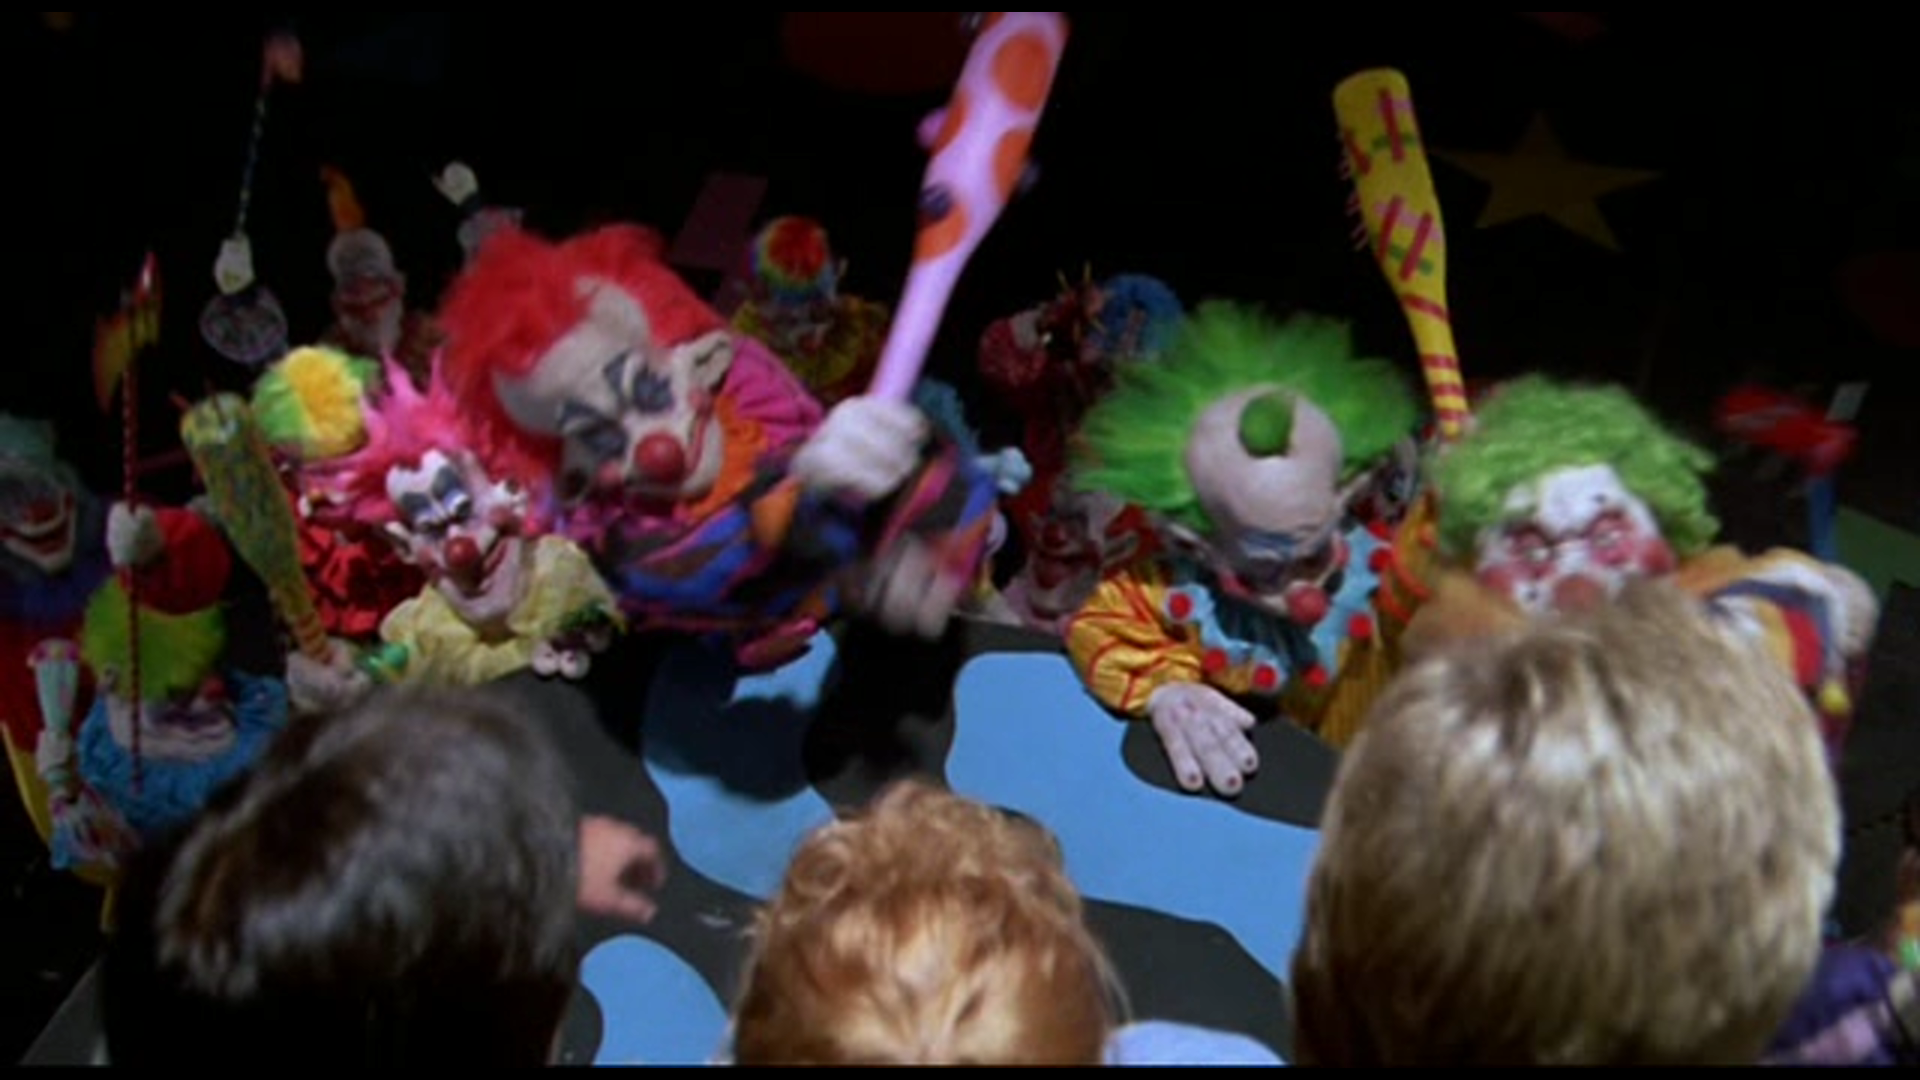 Killer_Klowns_Screenshot_-_156